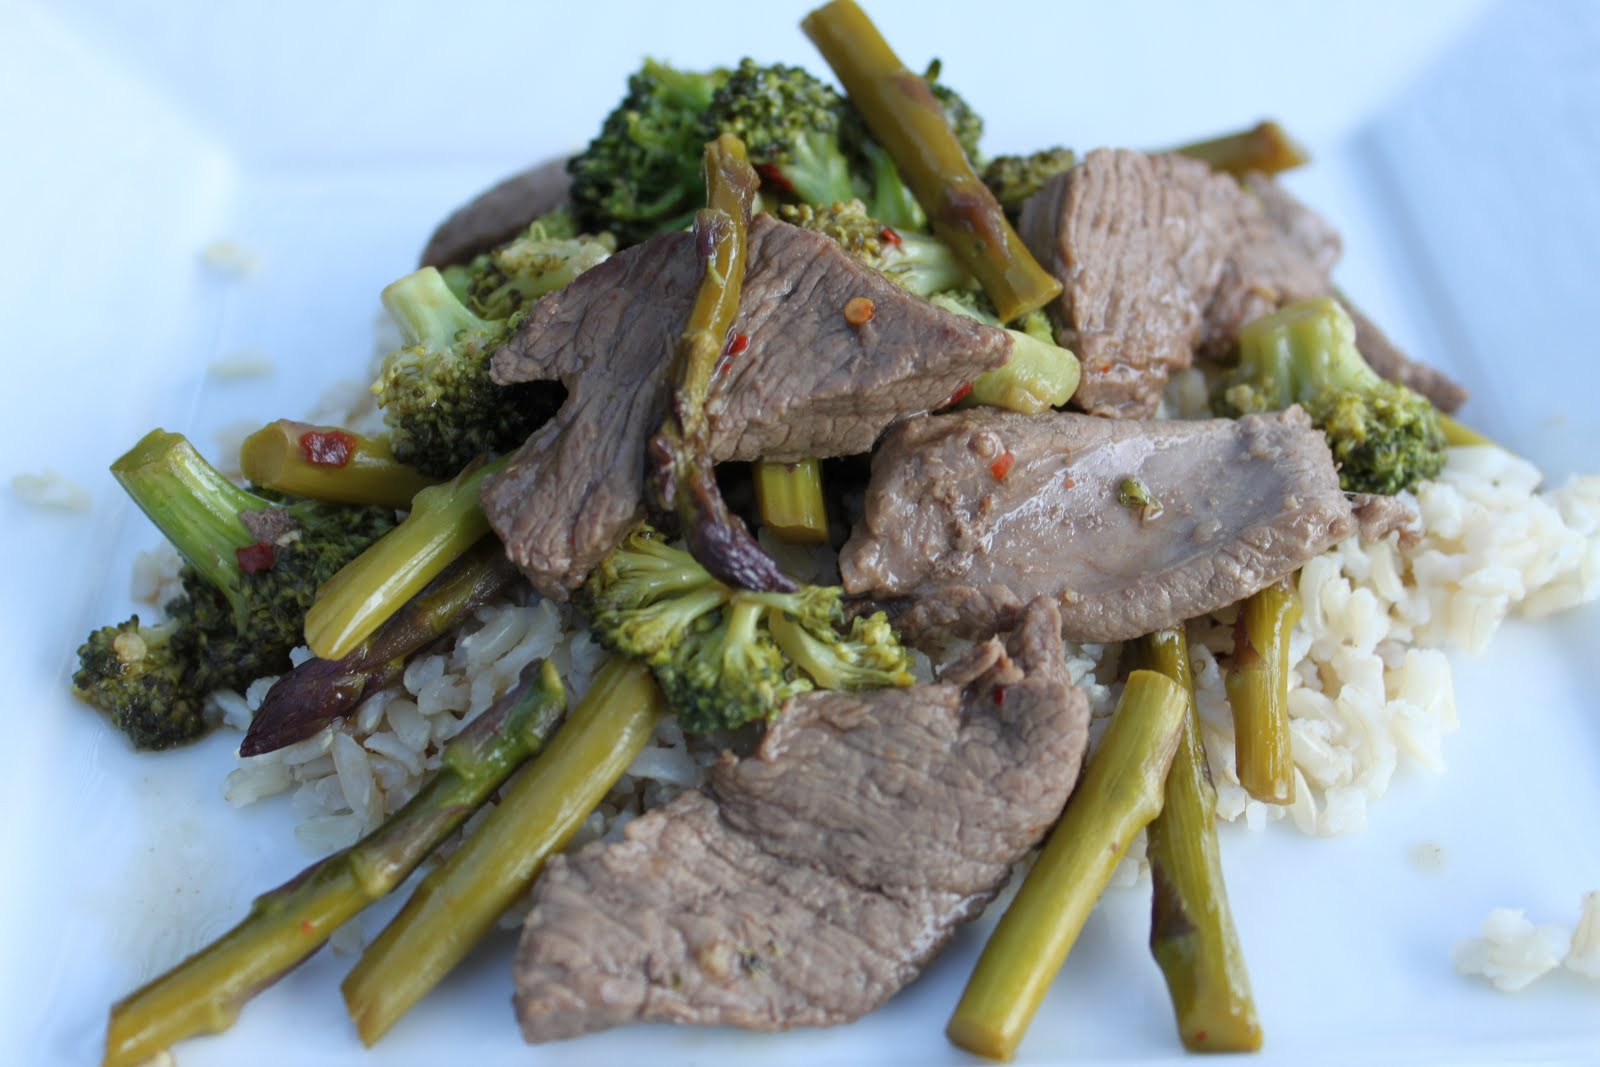 Erin's Eatery: Beef Stir Fry with Broccoli and Asparagus